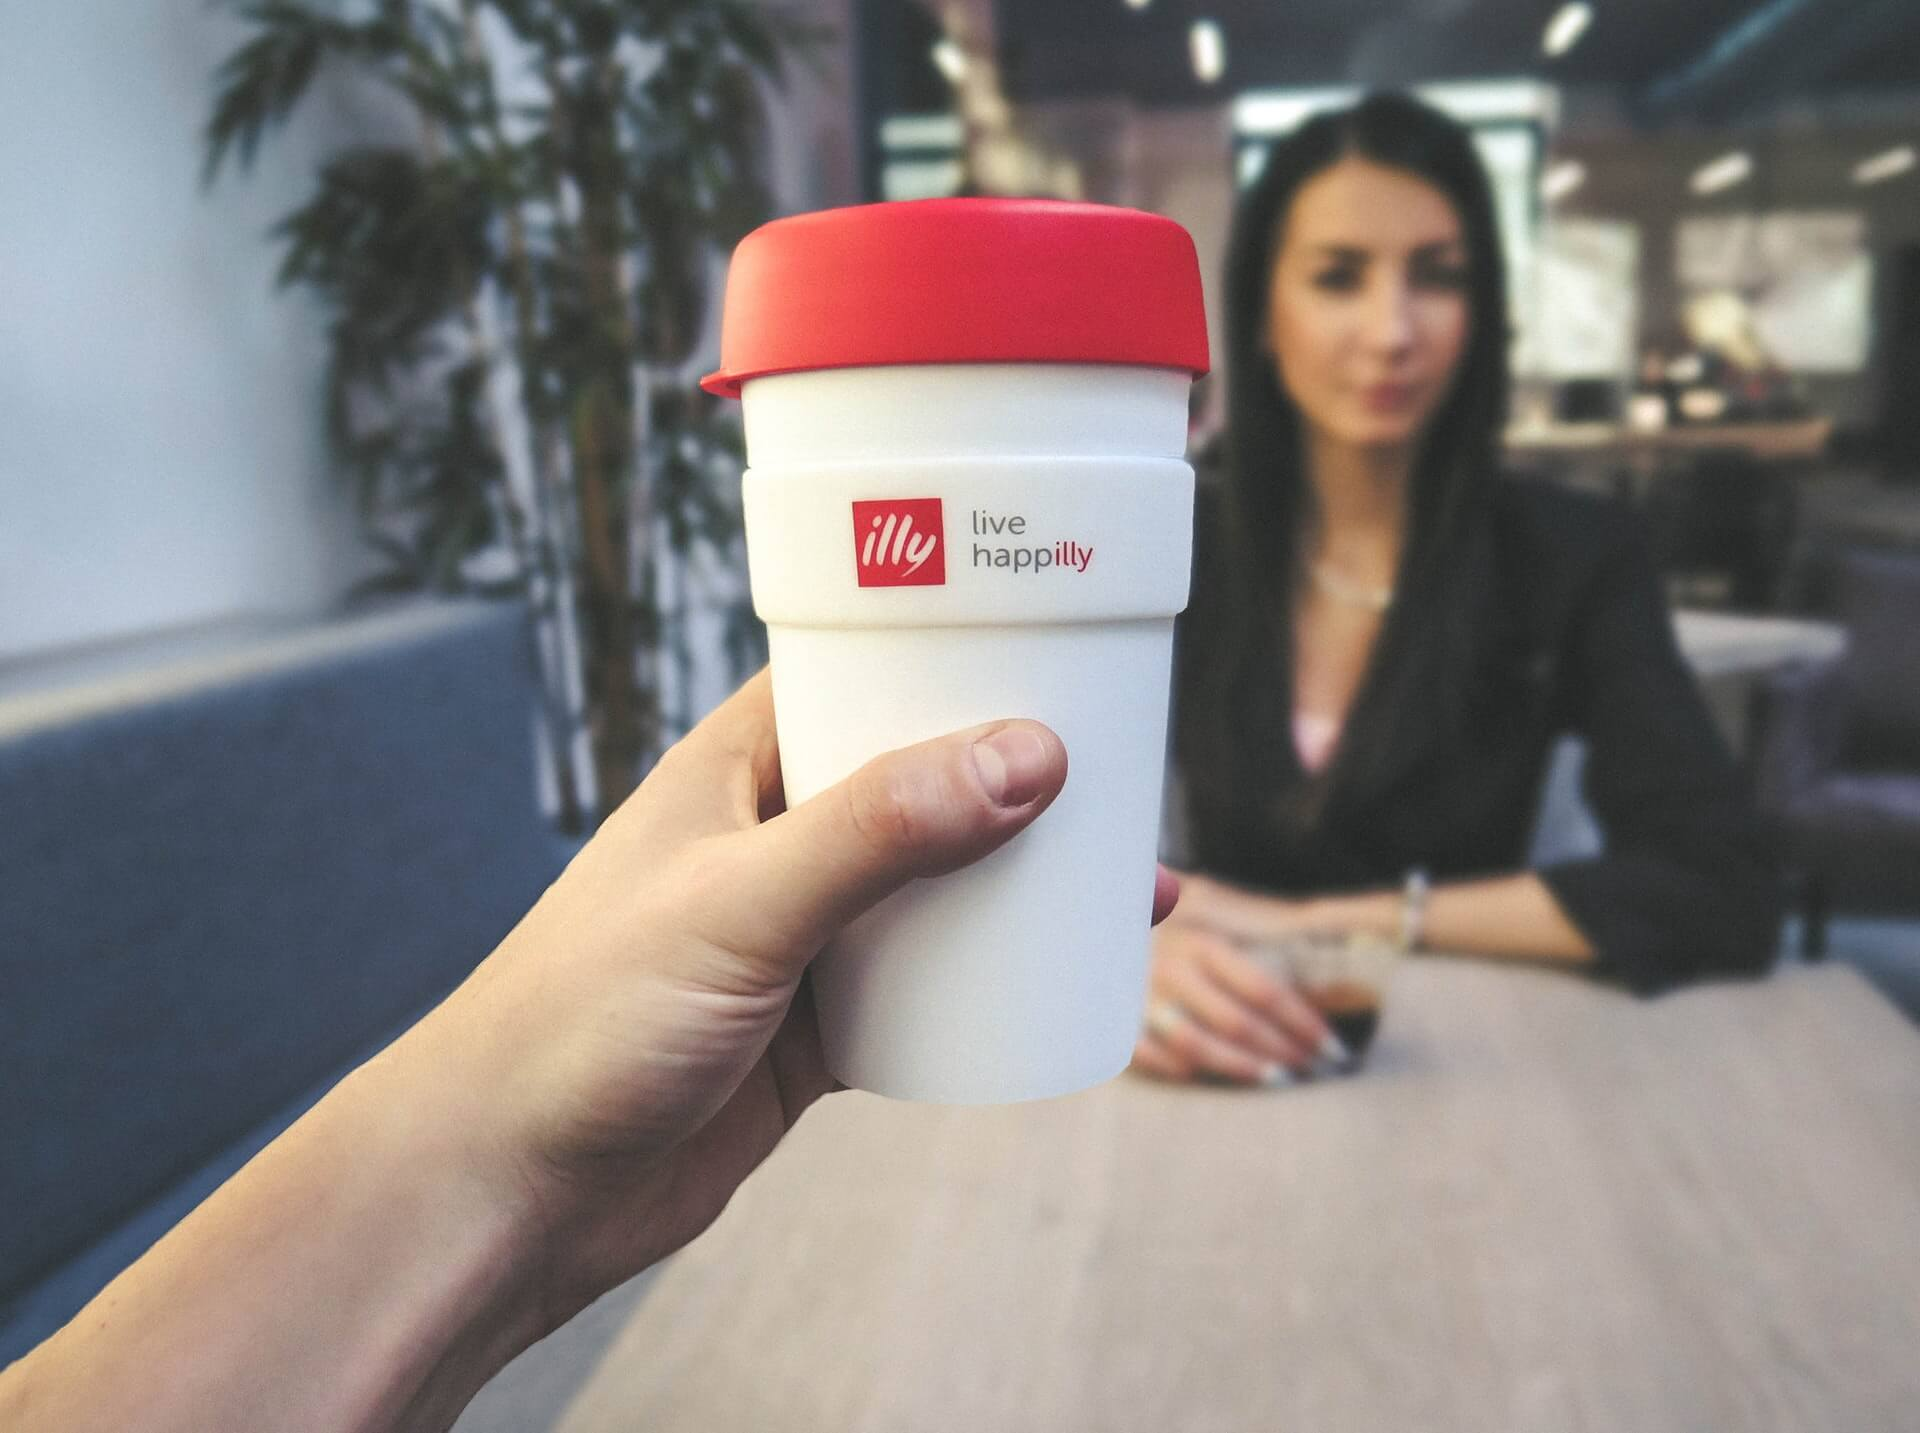 illy brand